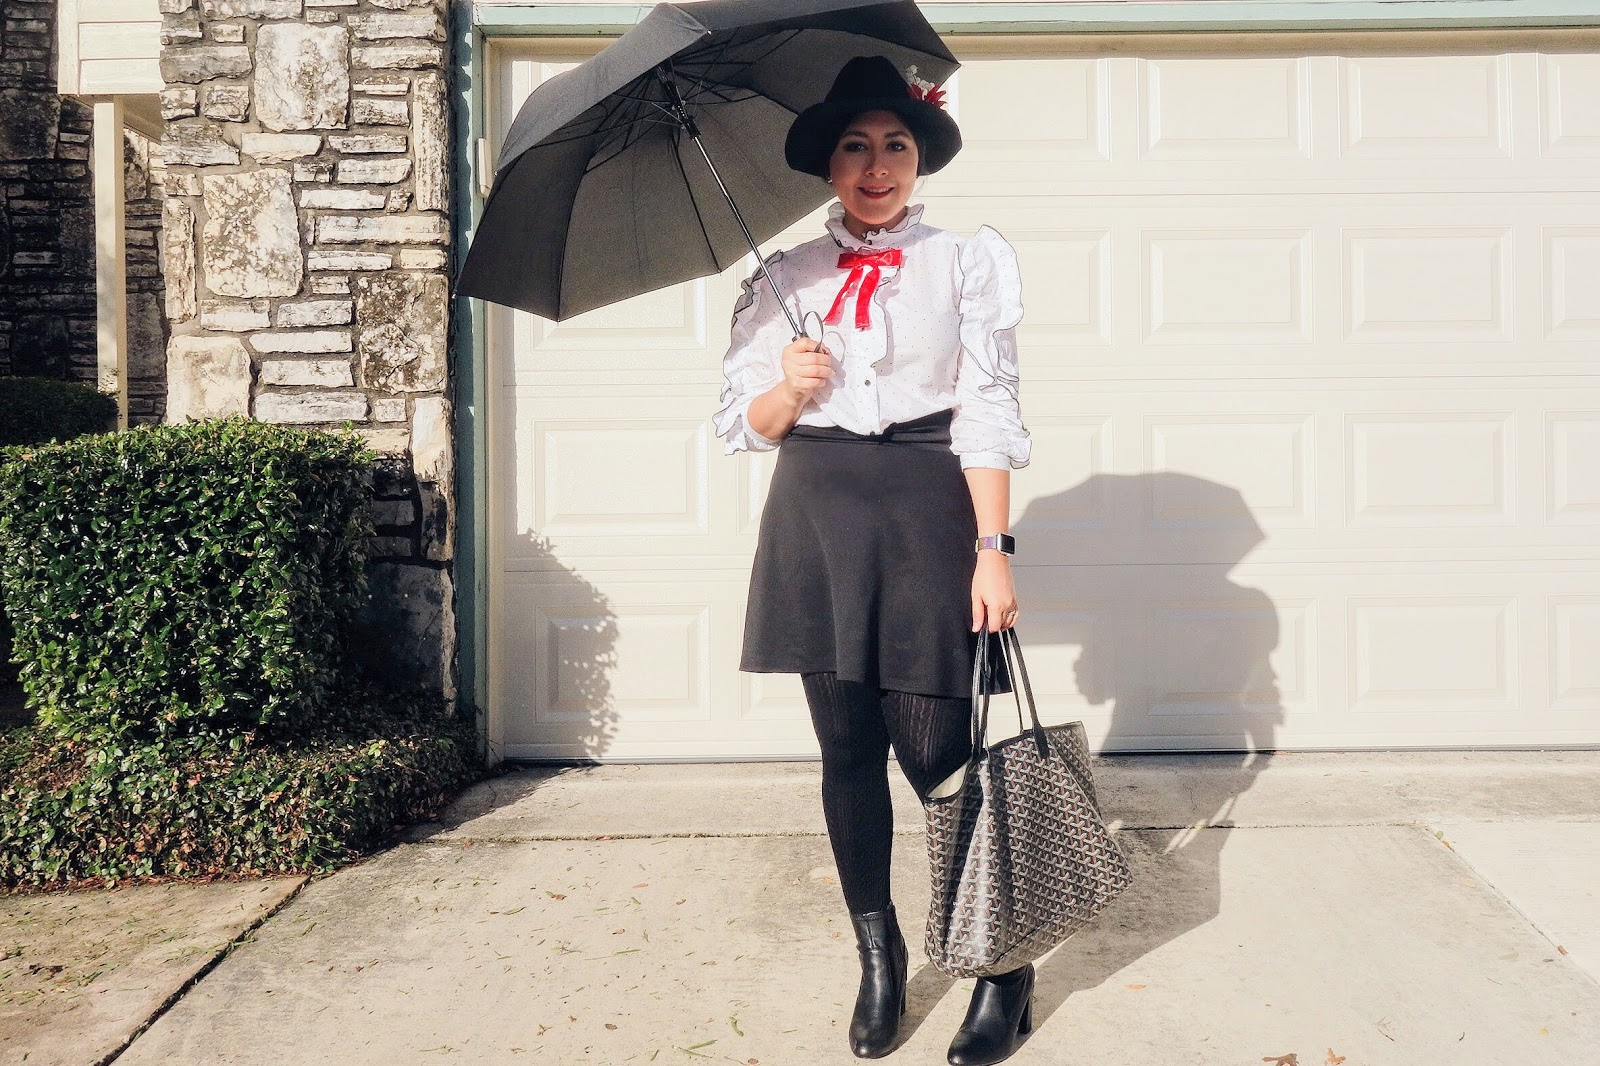 Mary Poppins Costume, Costume Ideas for Halloween, Mary Poppins